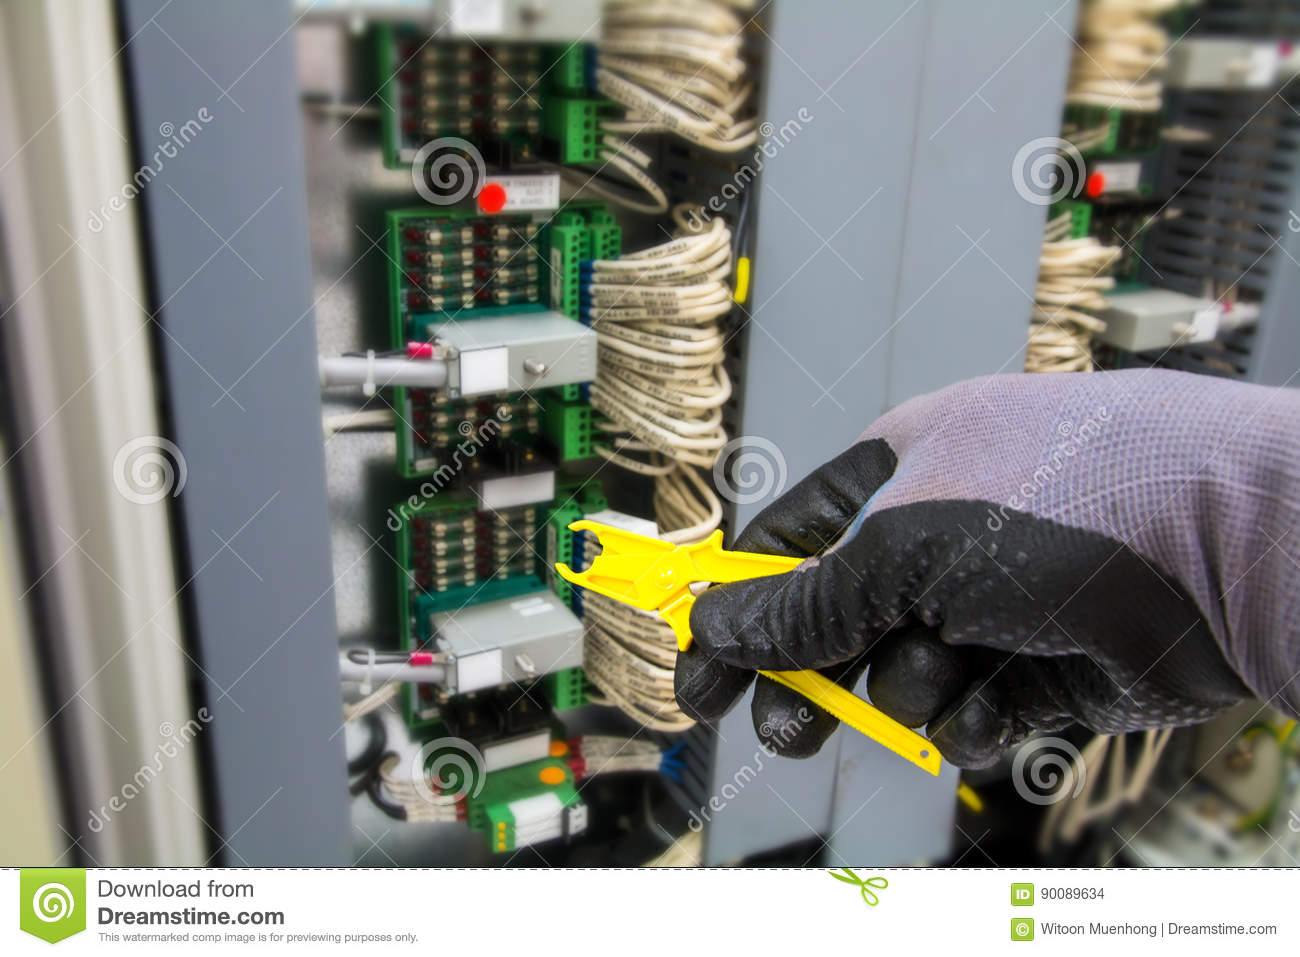 Fuse Removal Tool Hand Of Technician During Replace The In Fix Box Junction